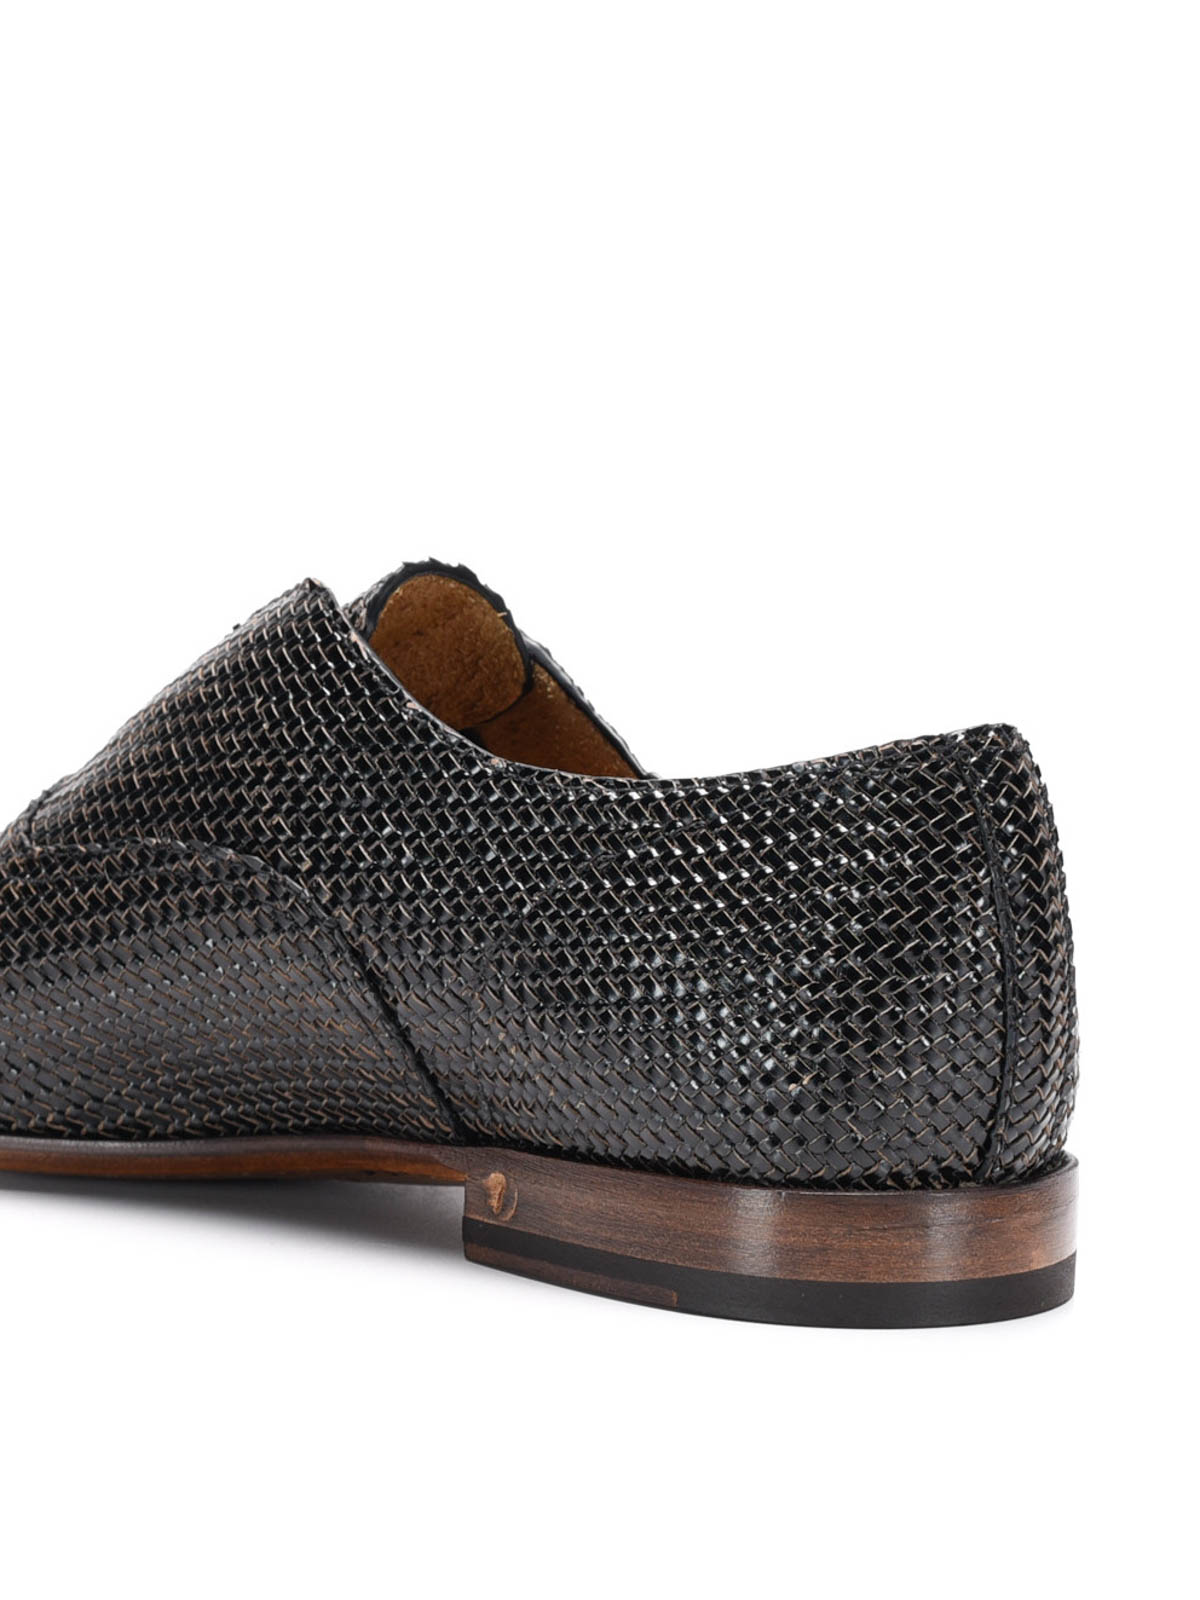 woven leather shoes by raparo classic shoes ikrix